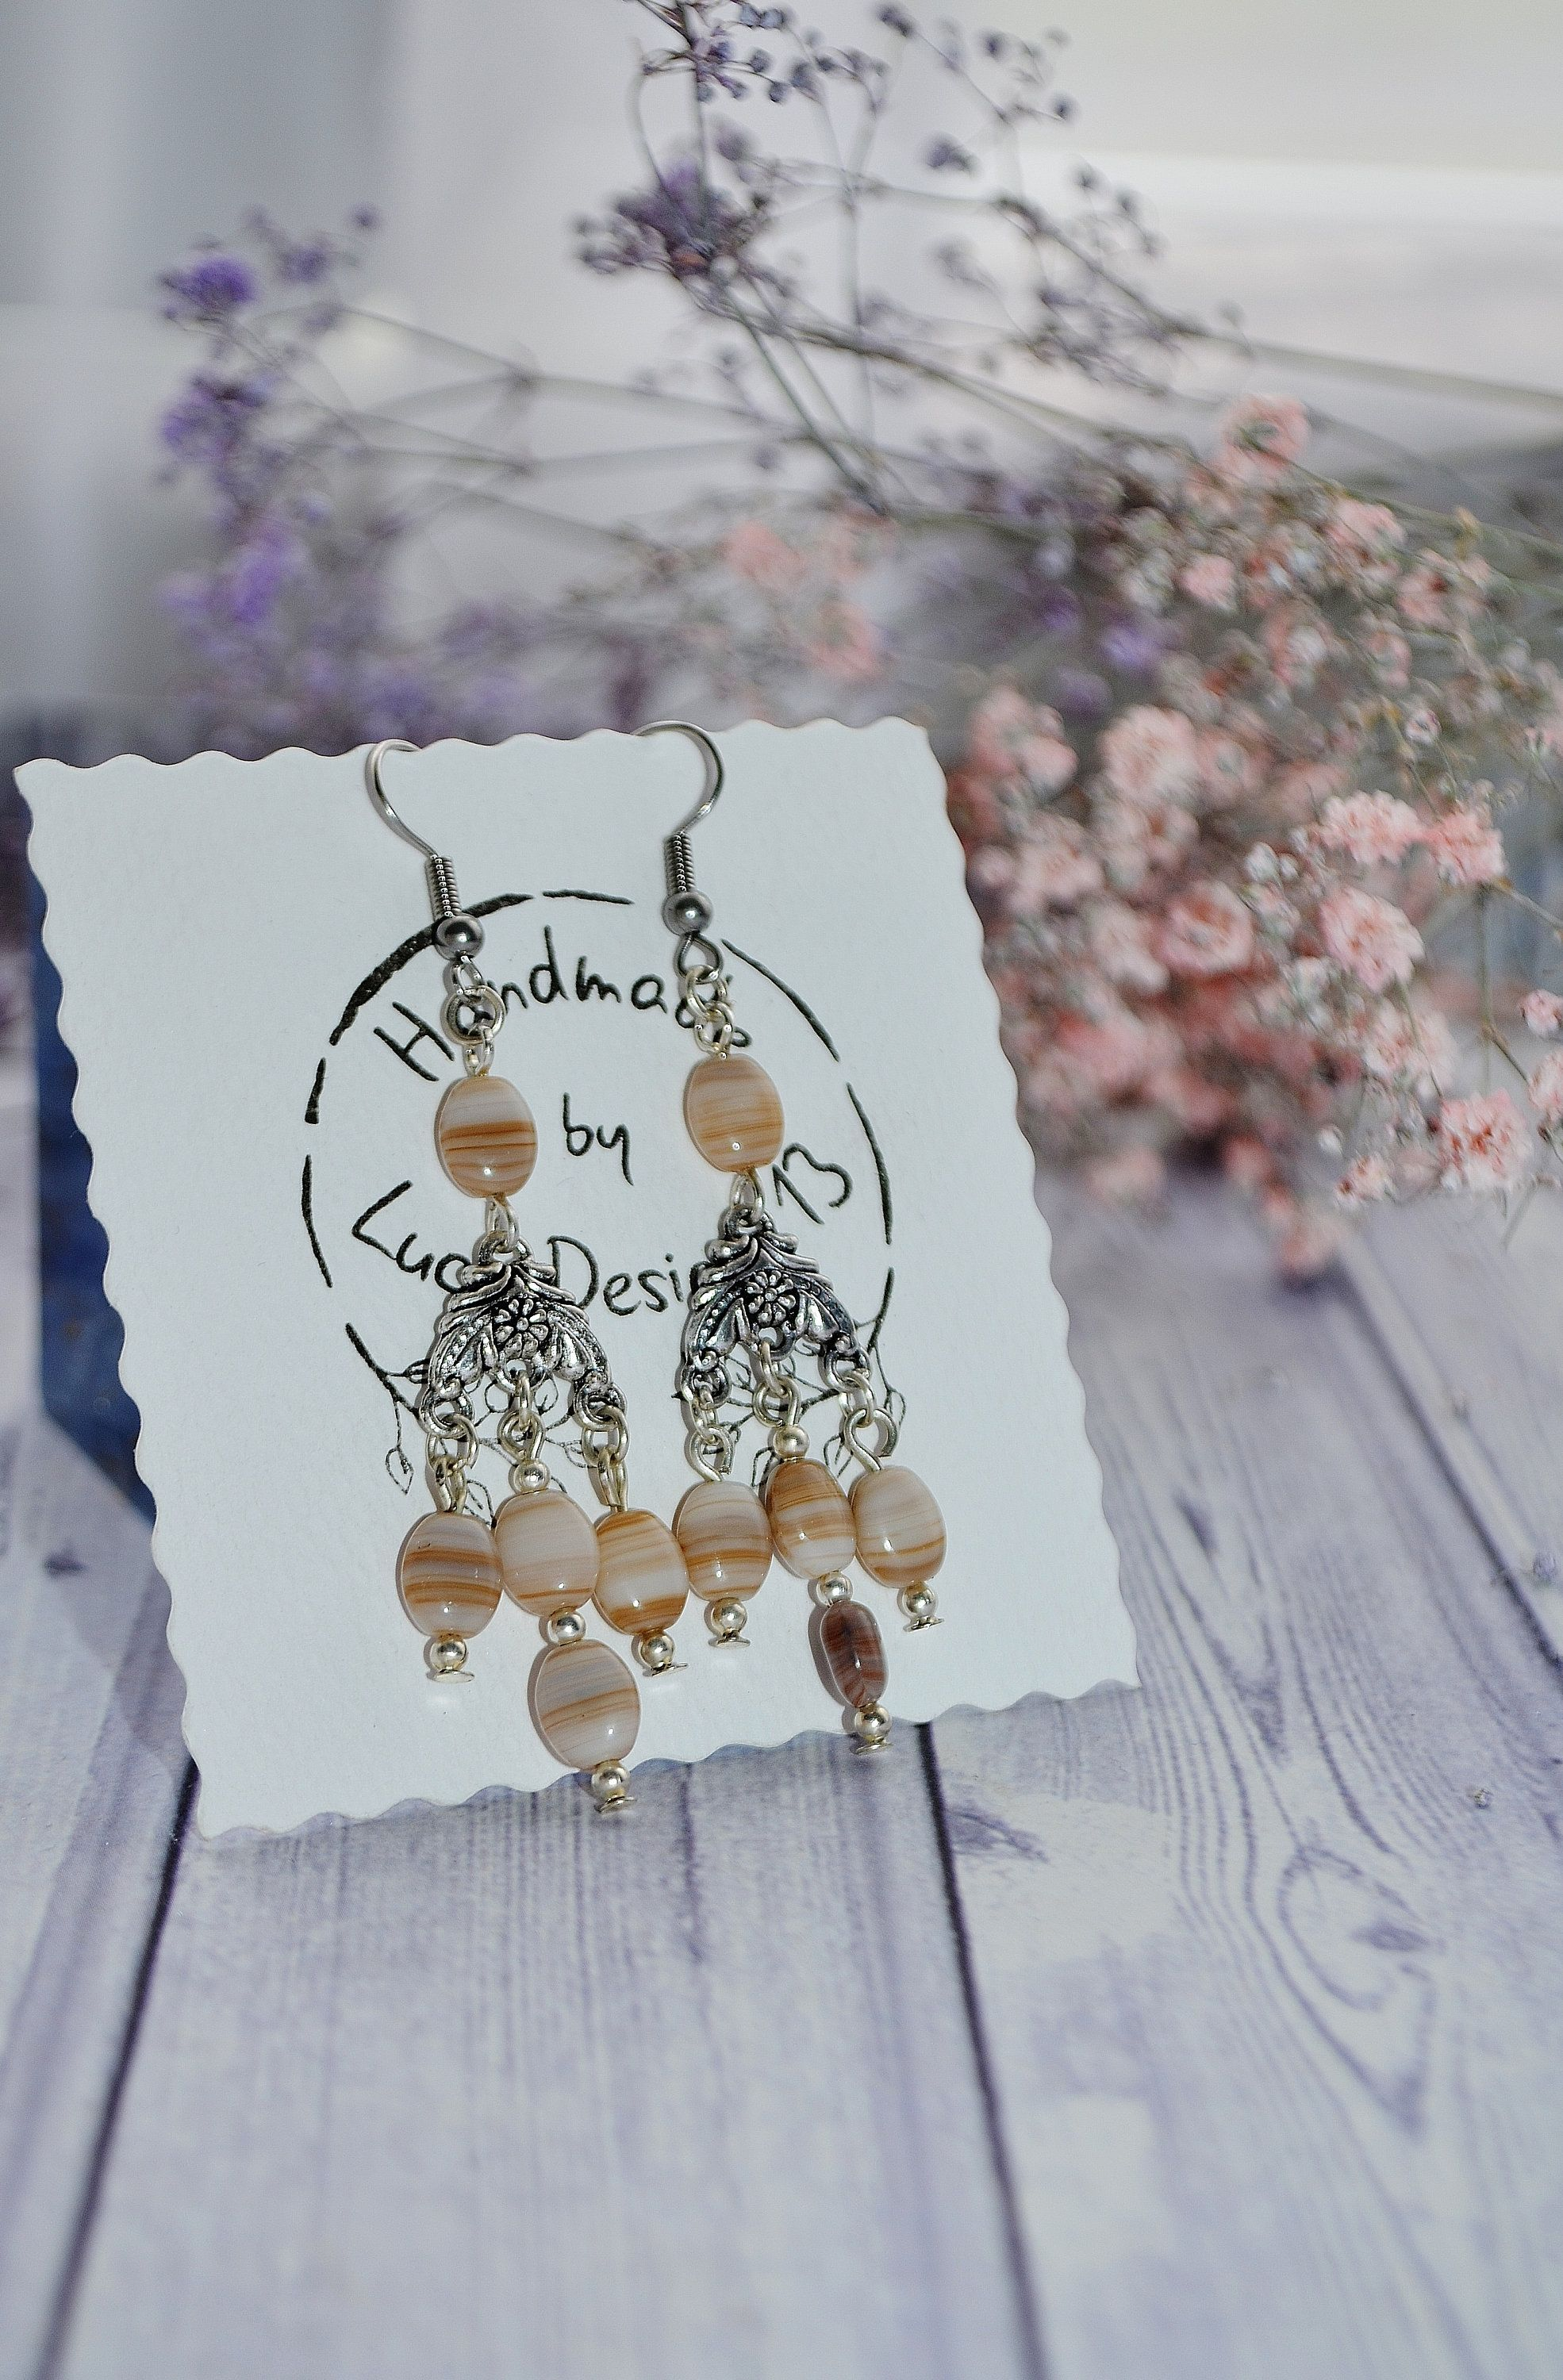 Pin on ETSY Jewelry Handmade by LucyDesigns13